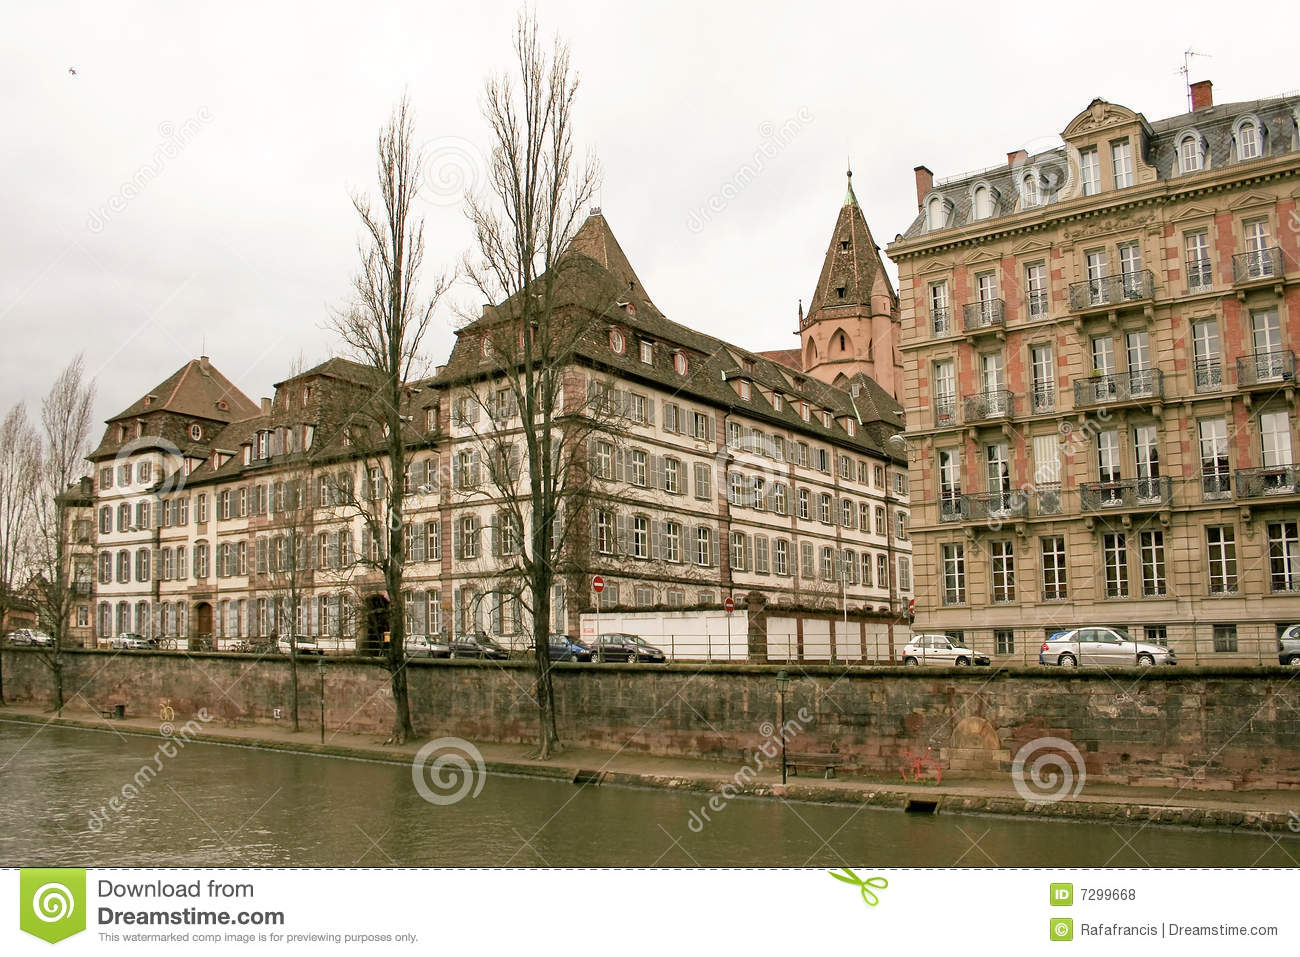 Strasbourg in alsace france royalty free stock photos for Alsace carrelage strasbourg